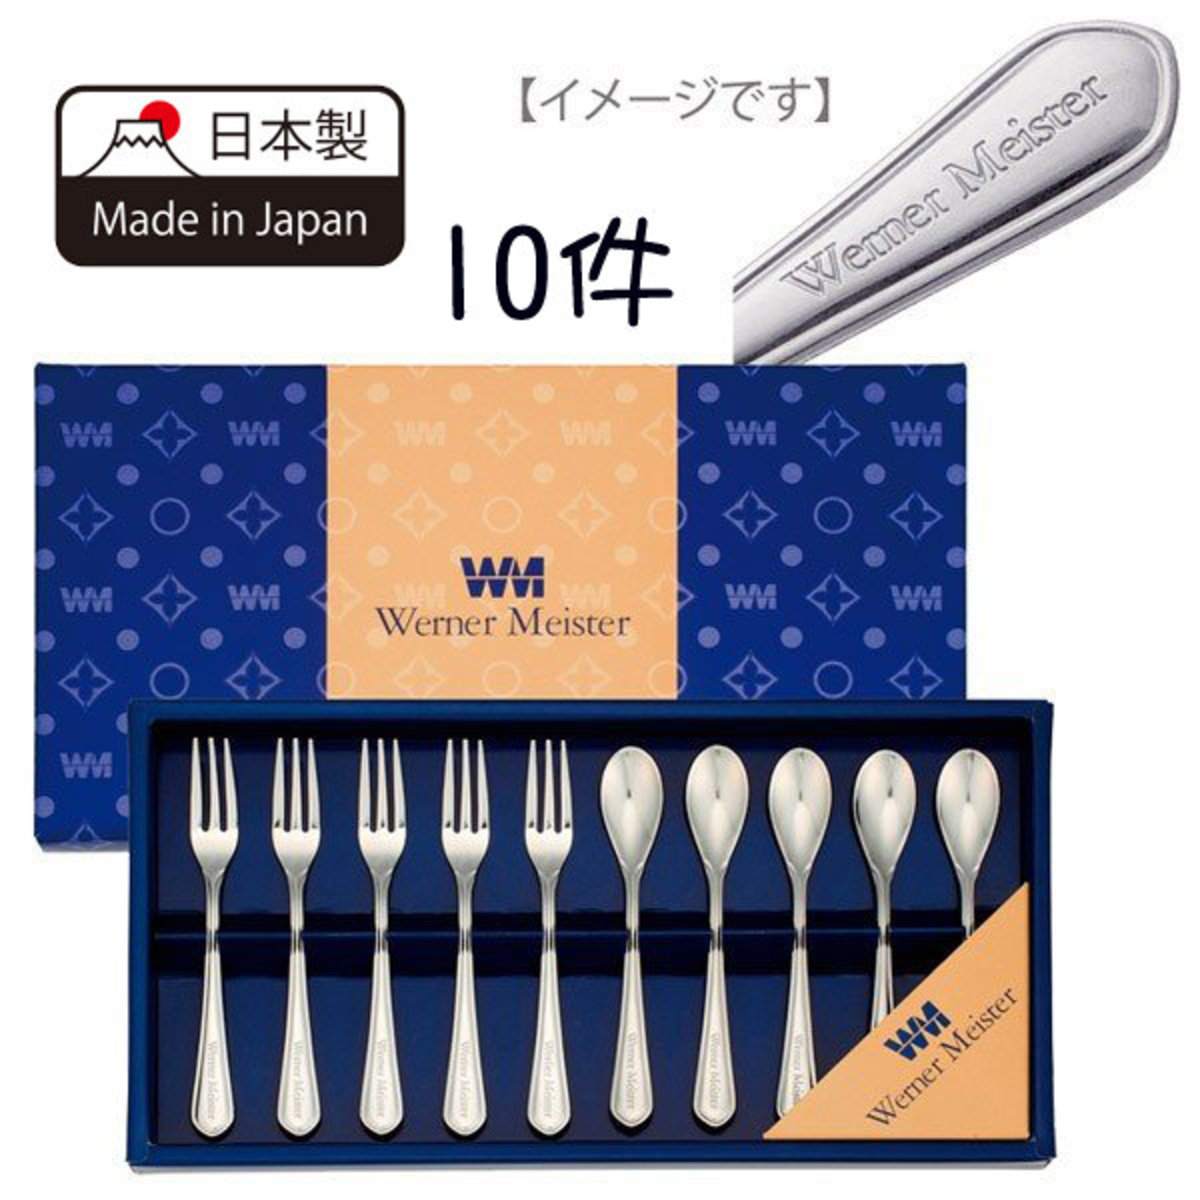 Japan Made Stainless Steel Cutlery (10-piece set)